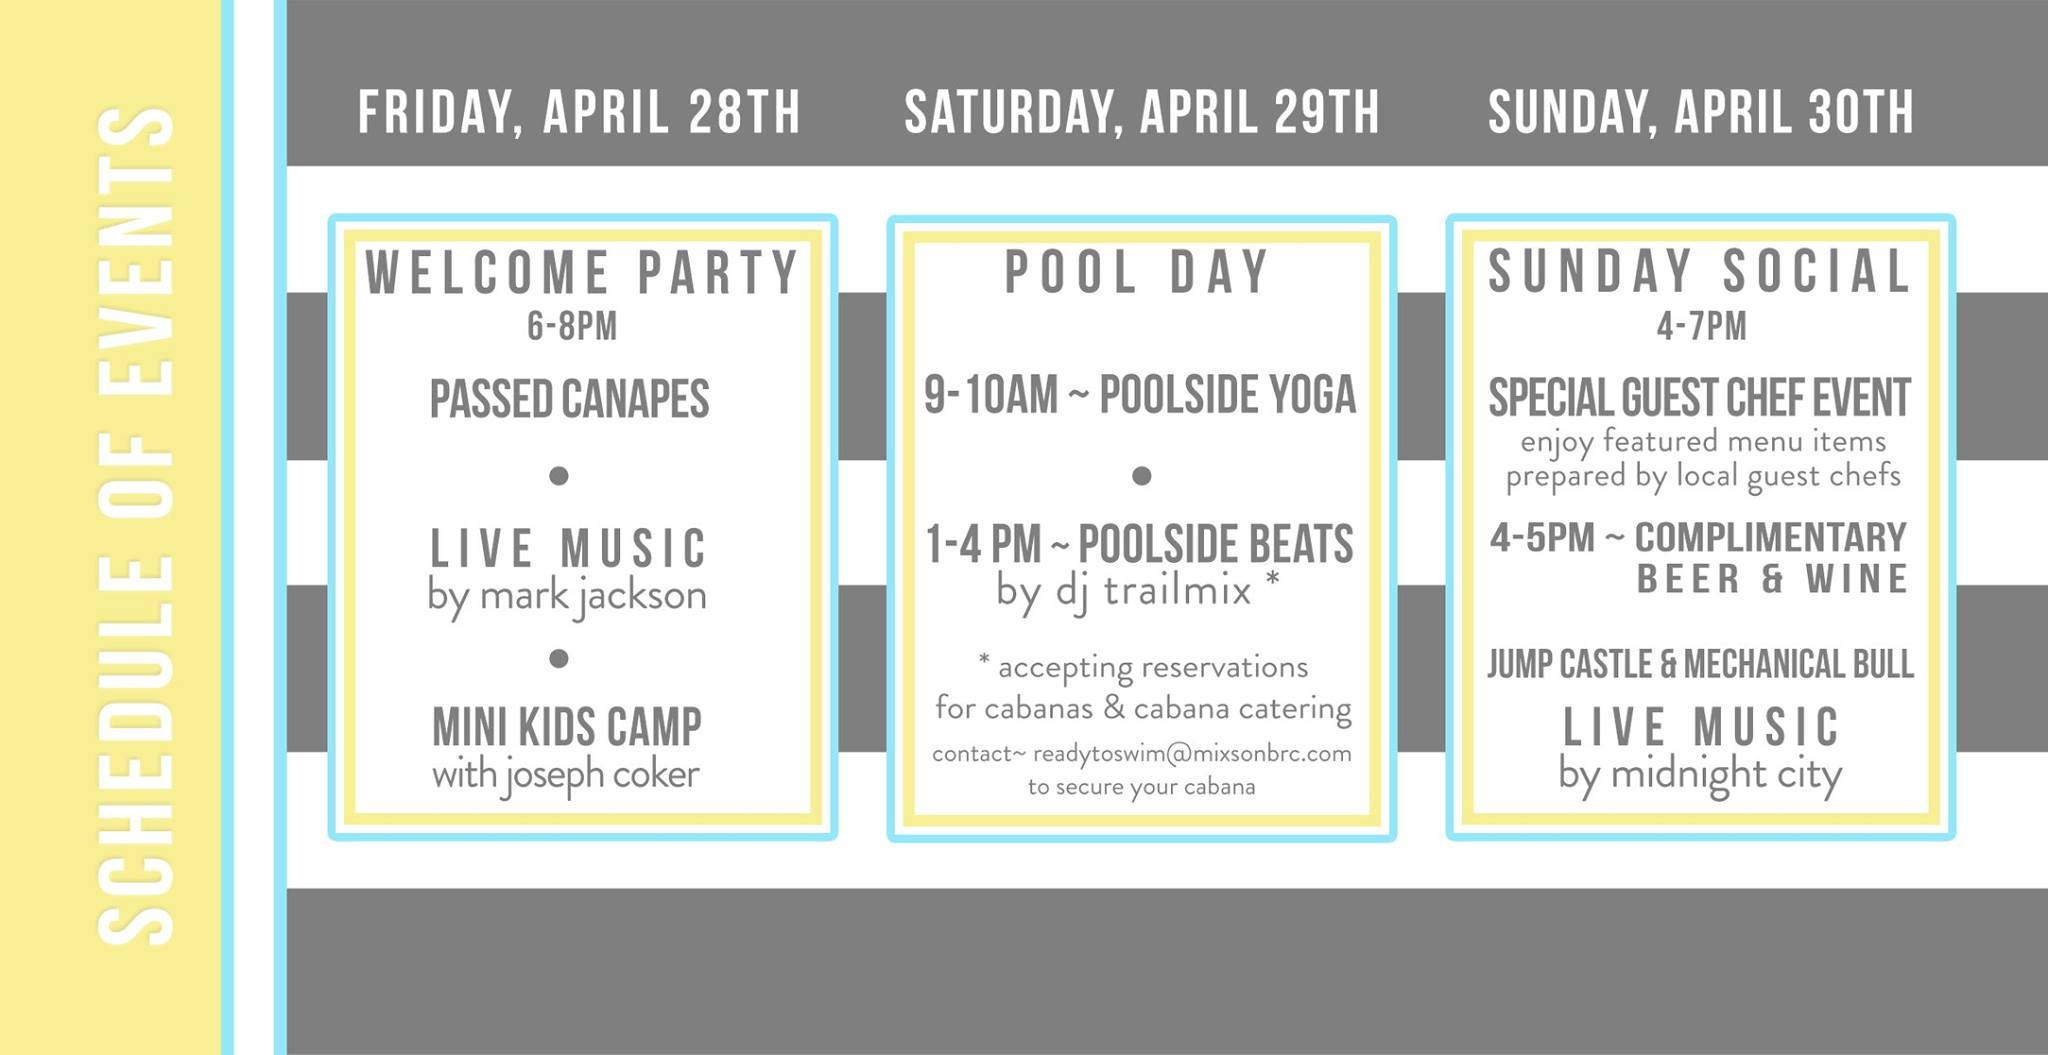 Mixson Member weekend schedule of events